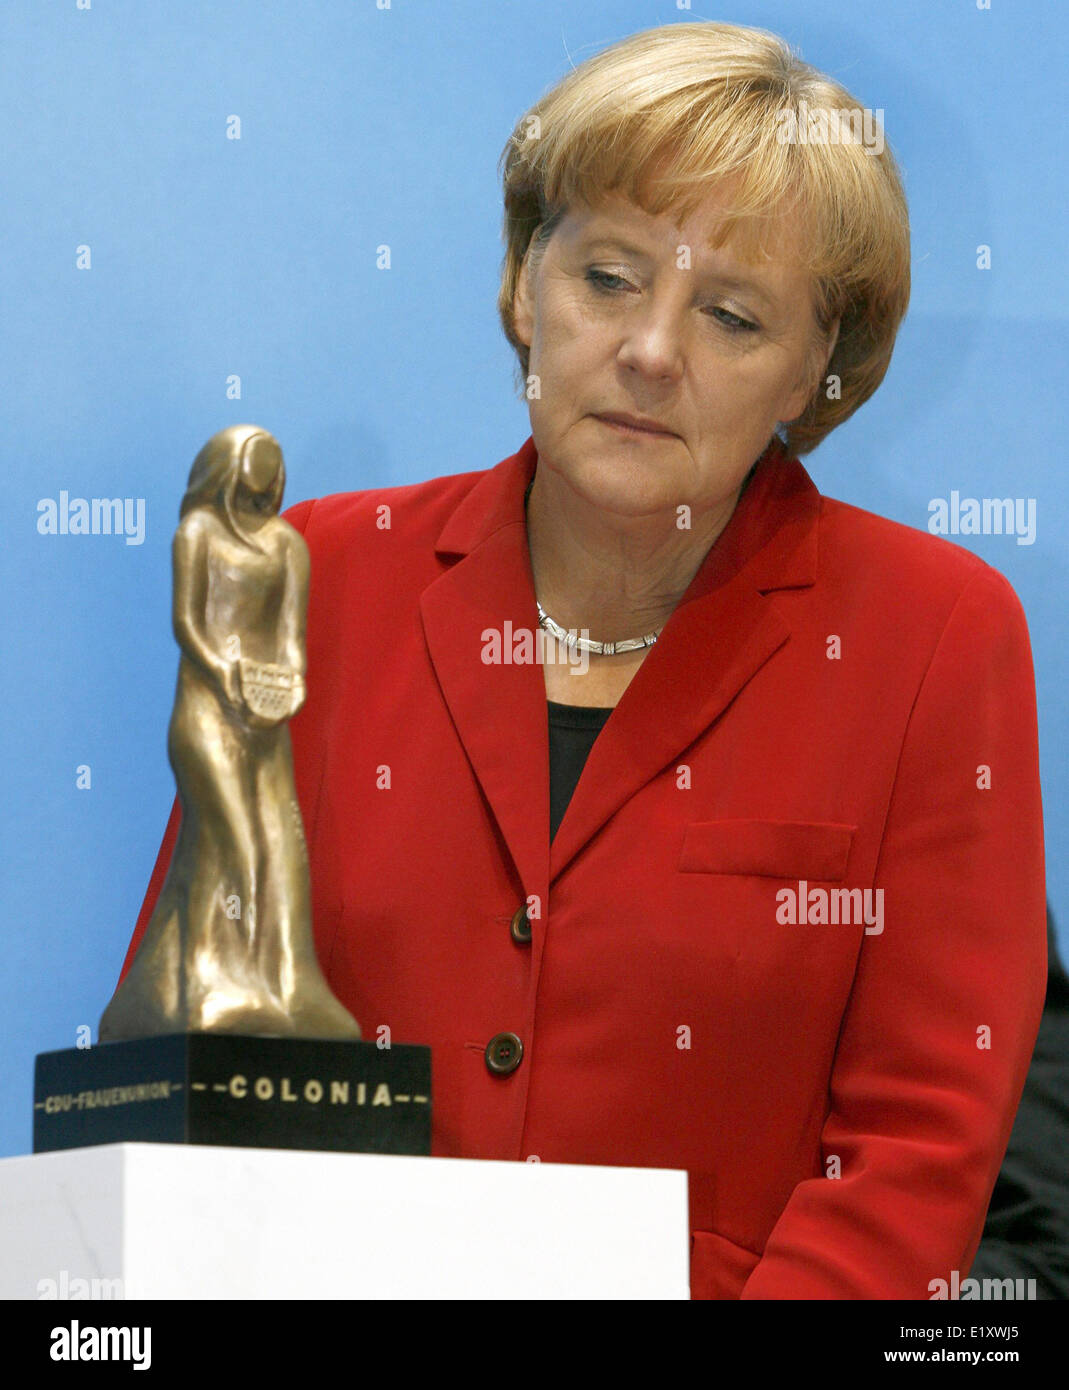 Chancellor Angela Merkel (CDU) looks at the 'Colonia' the women's award of the women's union Cologne. - Stock Image